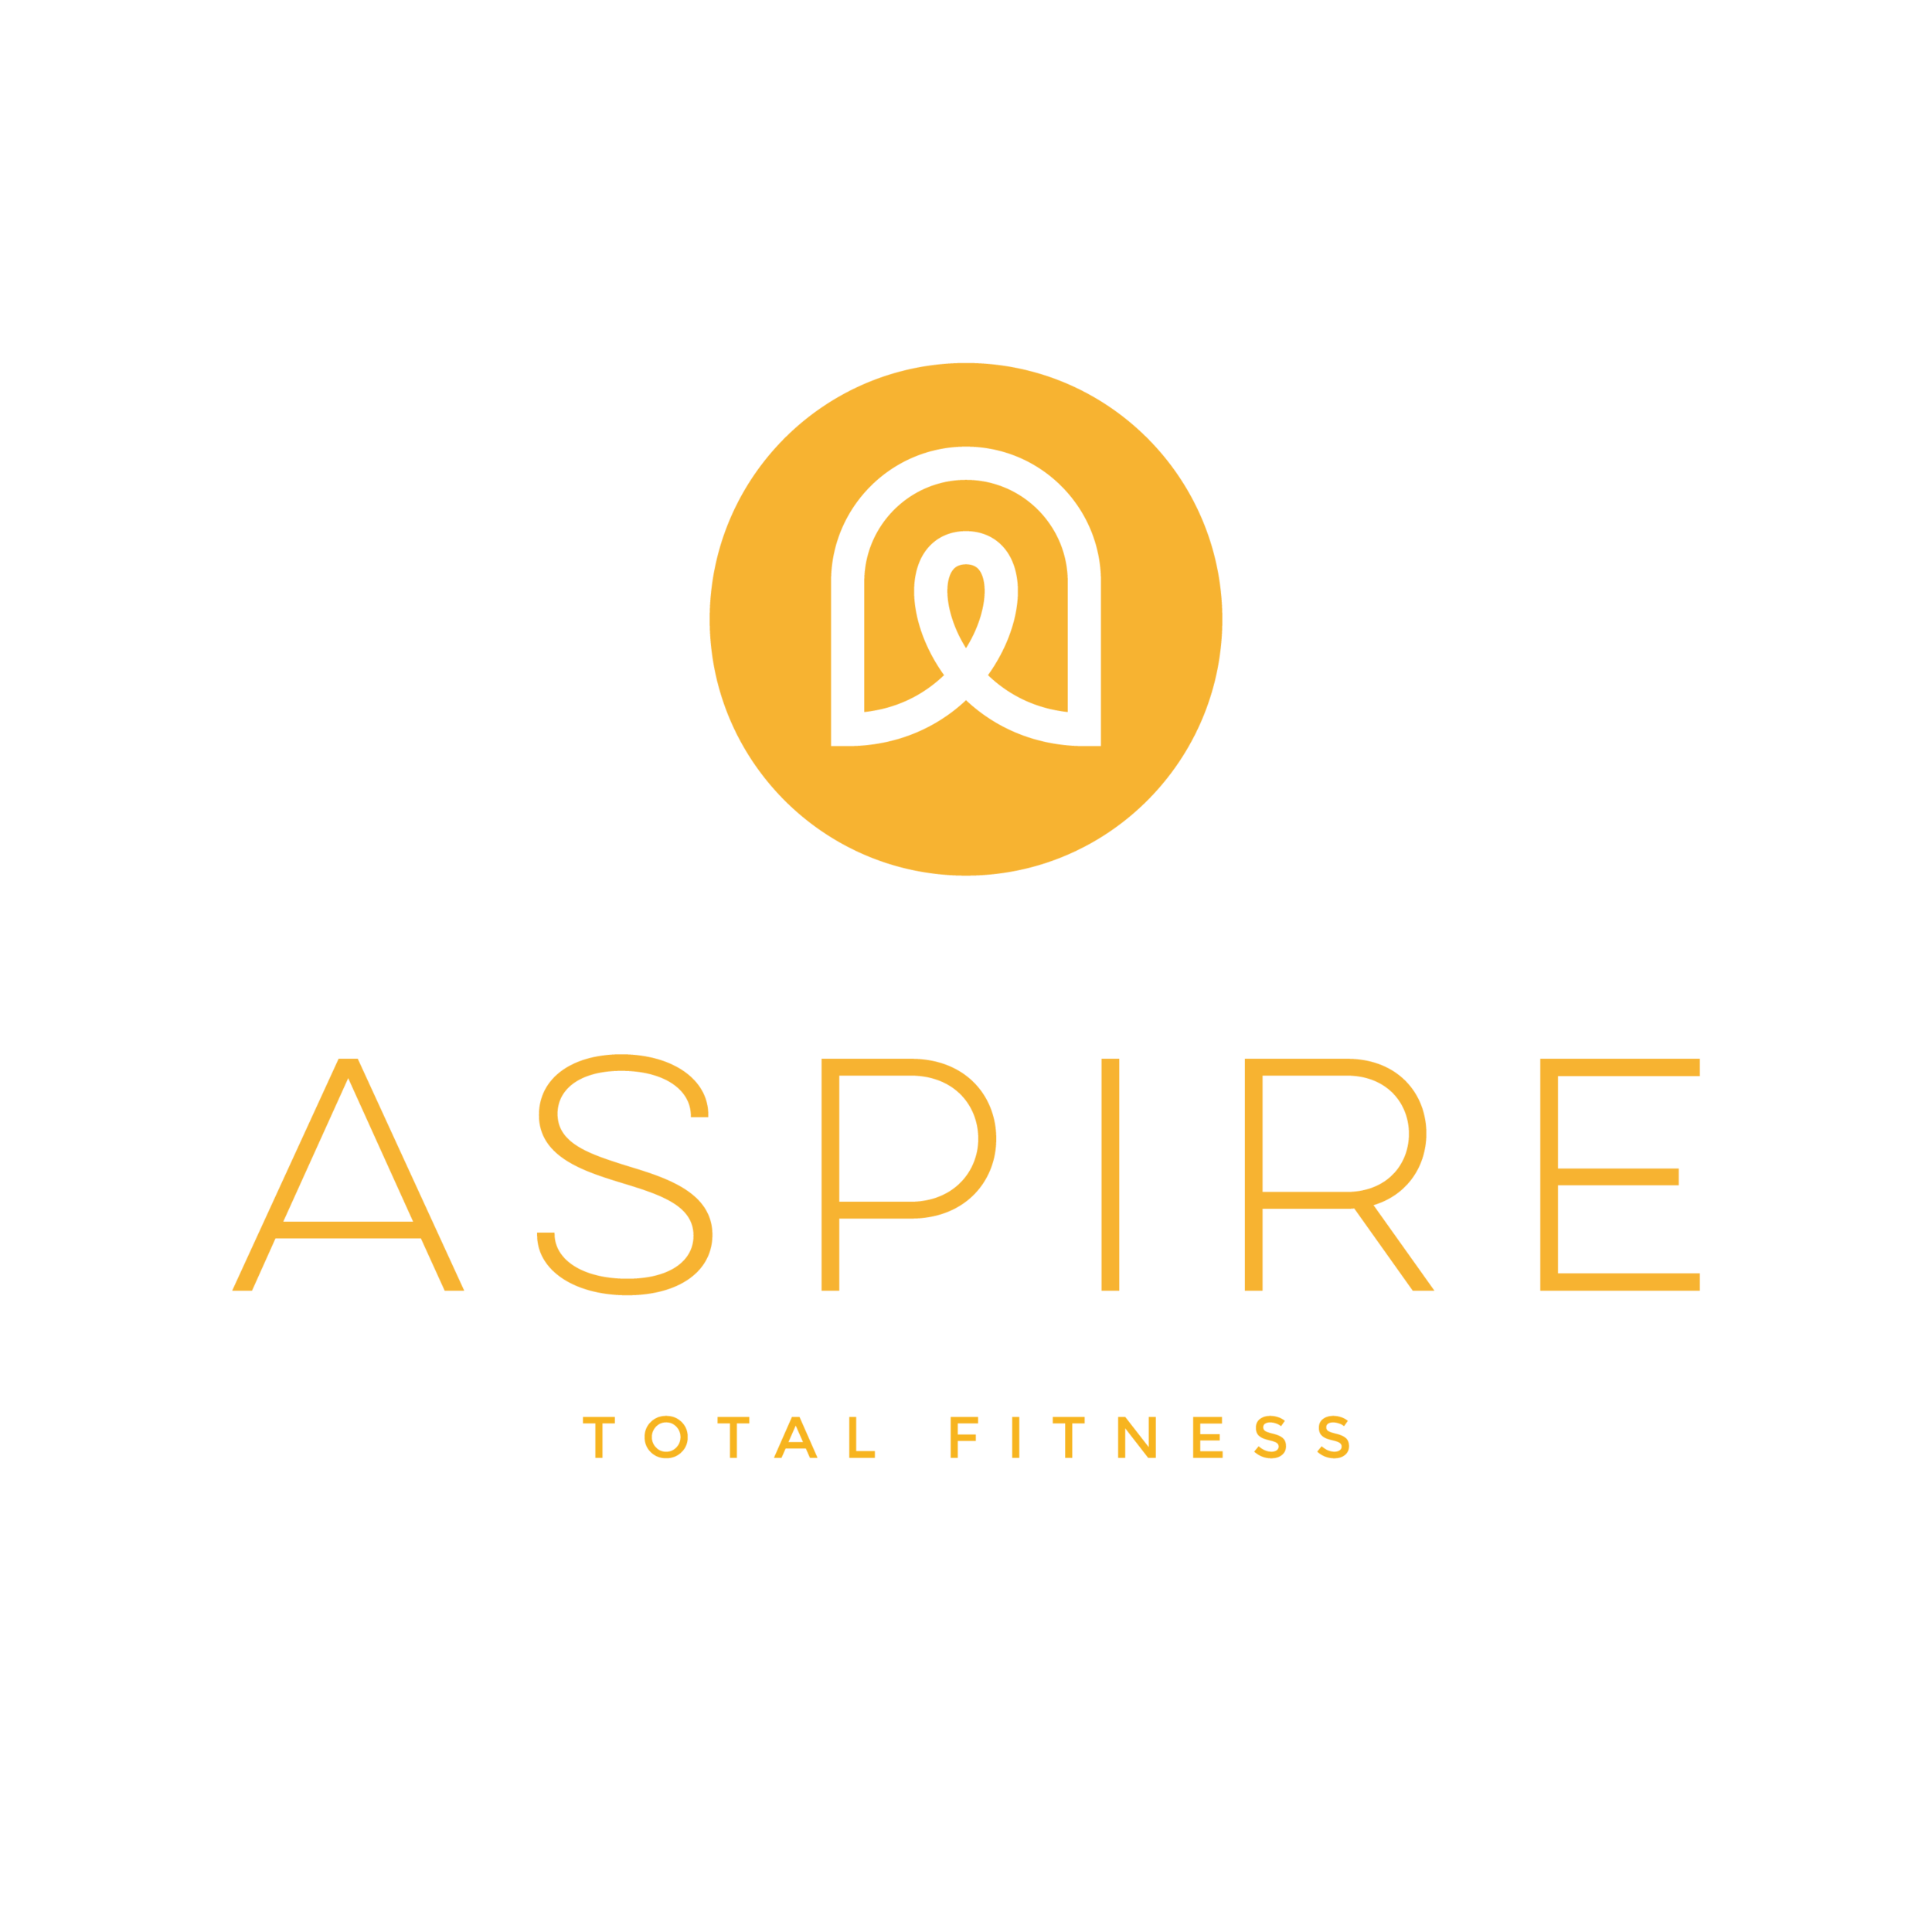 Aspire_Total_Fitness_Logo_Square.png